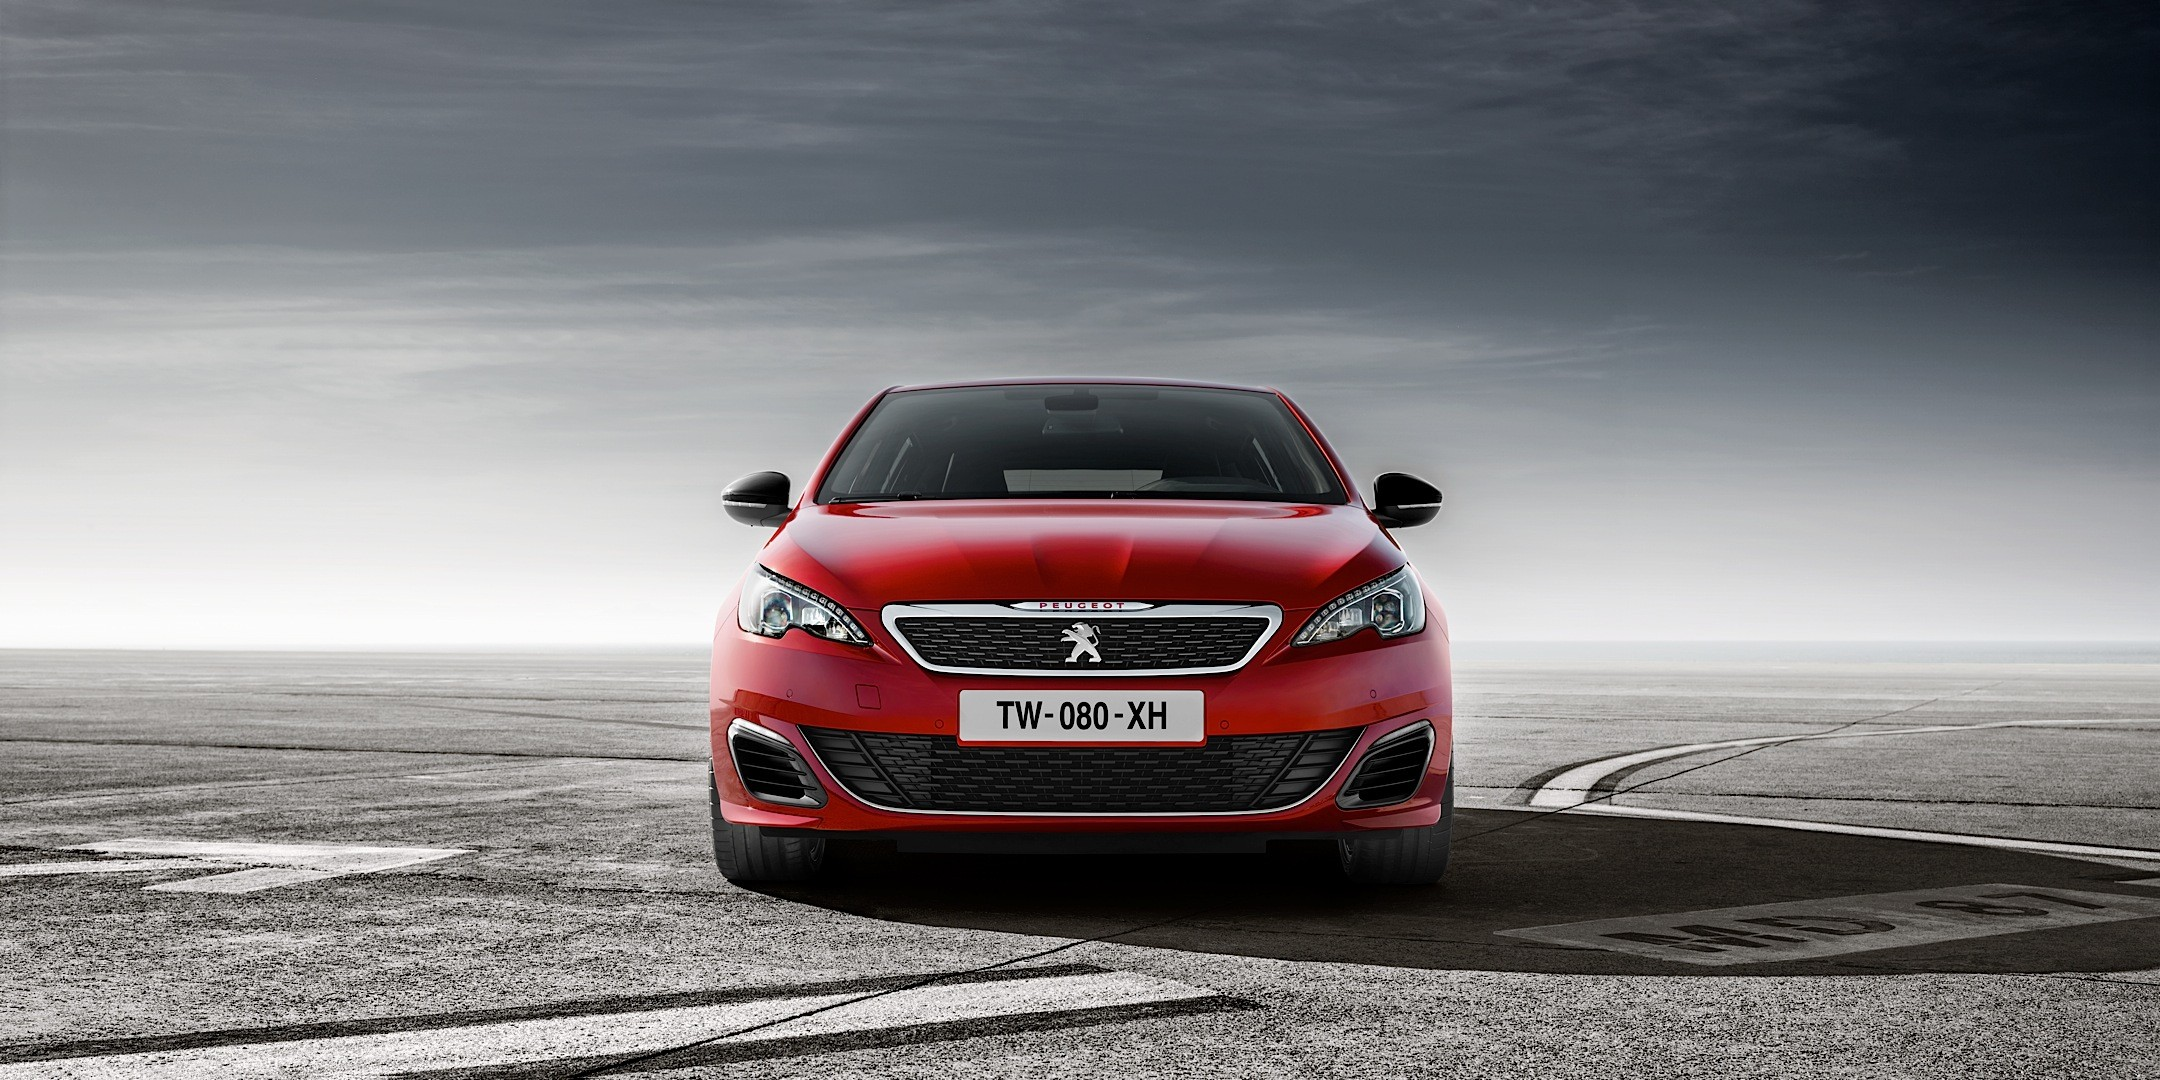 peugeot 308 gti revealed with 270 hp turbo punch. Black Bedroom Furniture Sets. Home Design Ideas